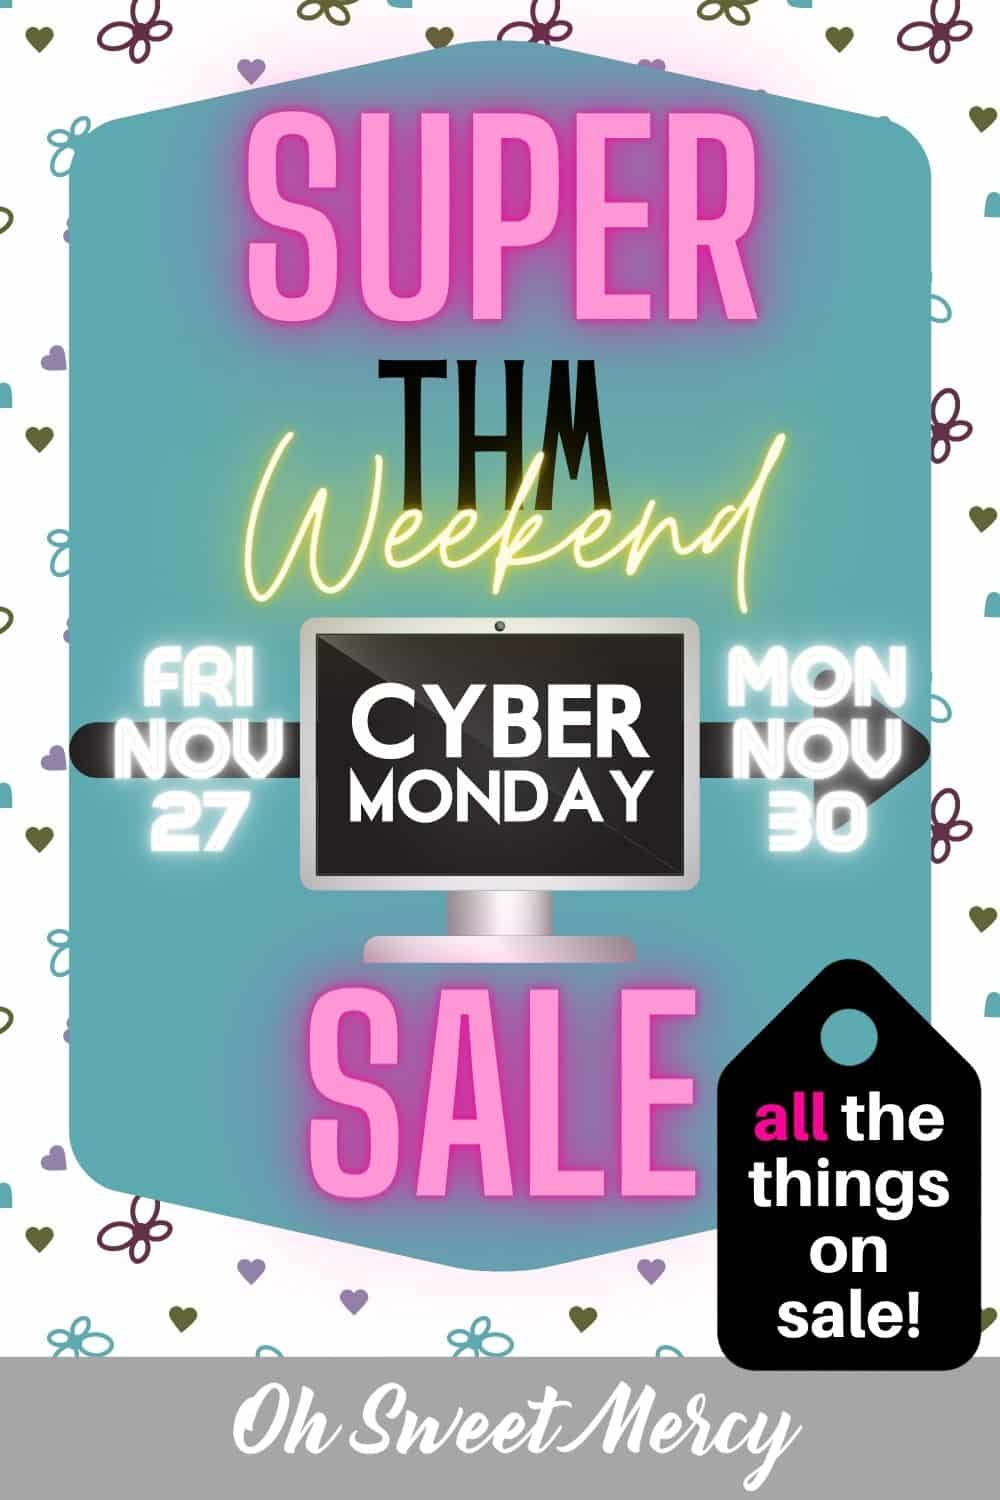 This year's THM Cyber Monday Sale is SUPER! Not just on Cyber Monday, but starting Black Friday and going all weekend through Nov 30! EVERYTHING is on sale! Time to stock up and bless others. #thm #cybermondaysale #blackfriday #thmdeals @ohsweetmercy